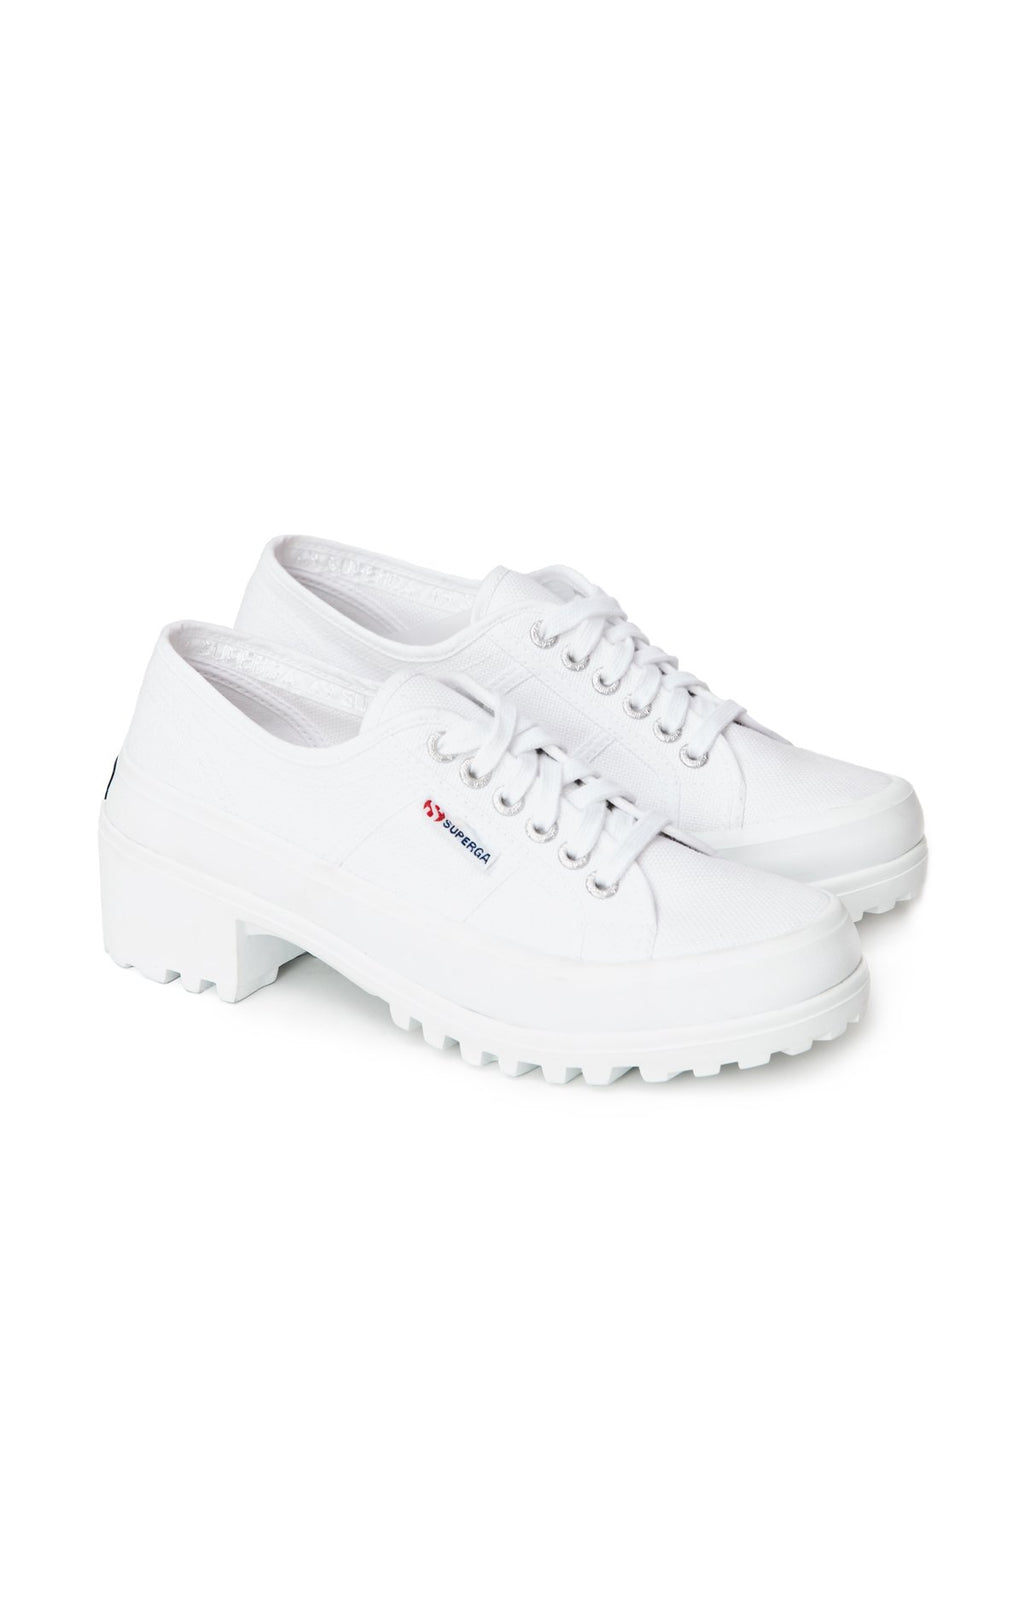 SUPERGA SNEAKER WITH RUBBER HEEL ANGLE